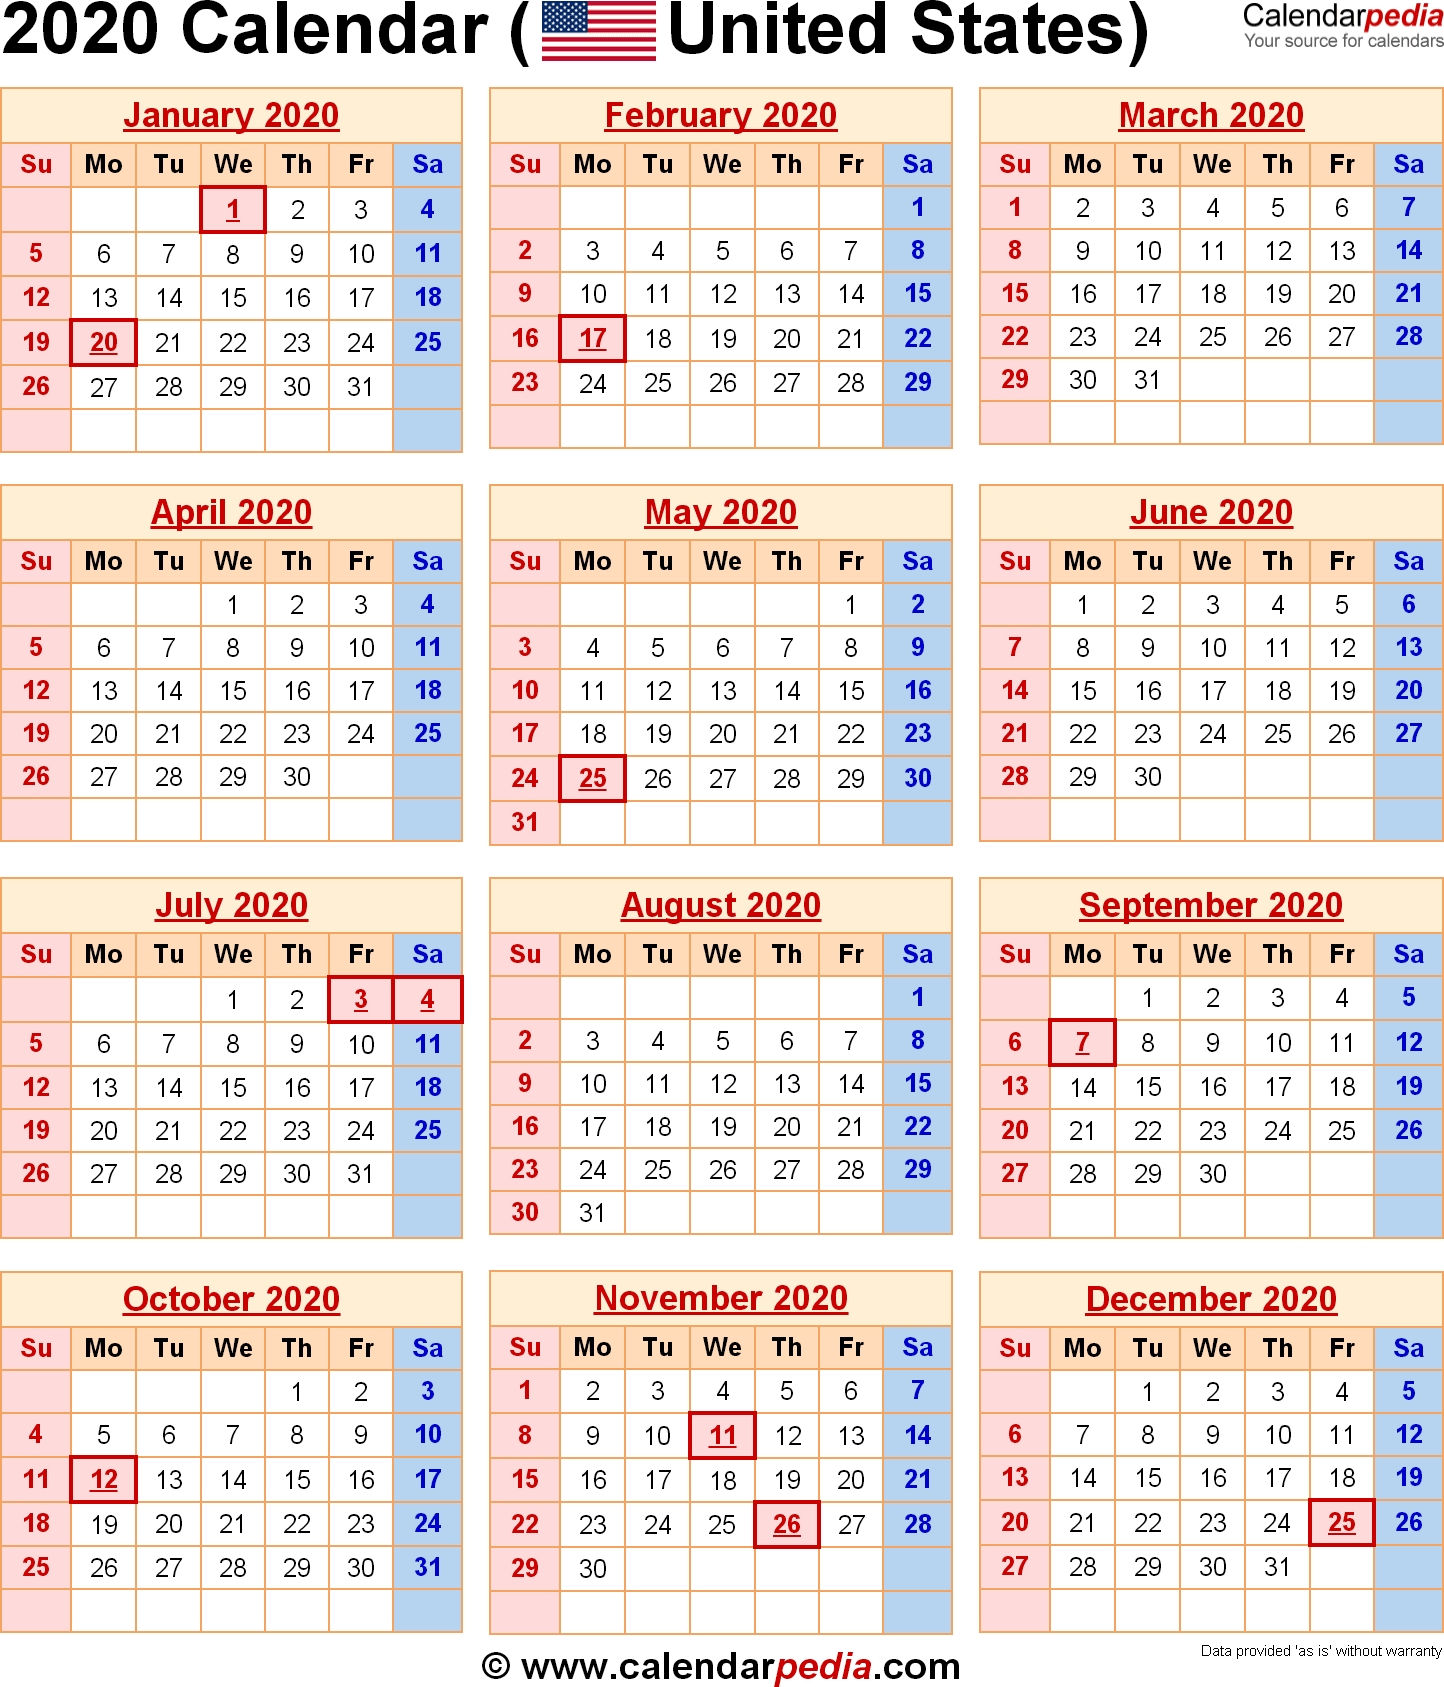 2020 Calendar With Federal Holidays-Printable 2020 Calendar Showing Holidays